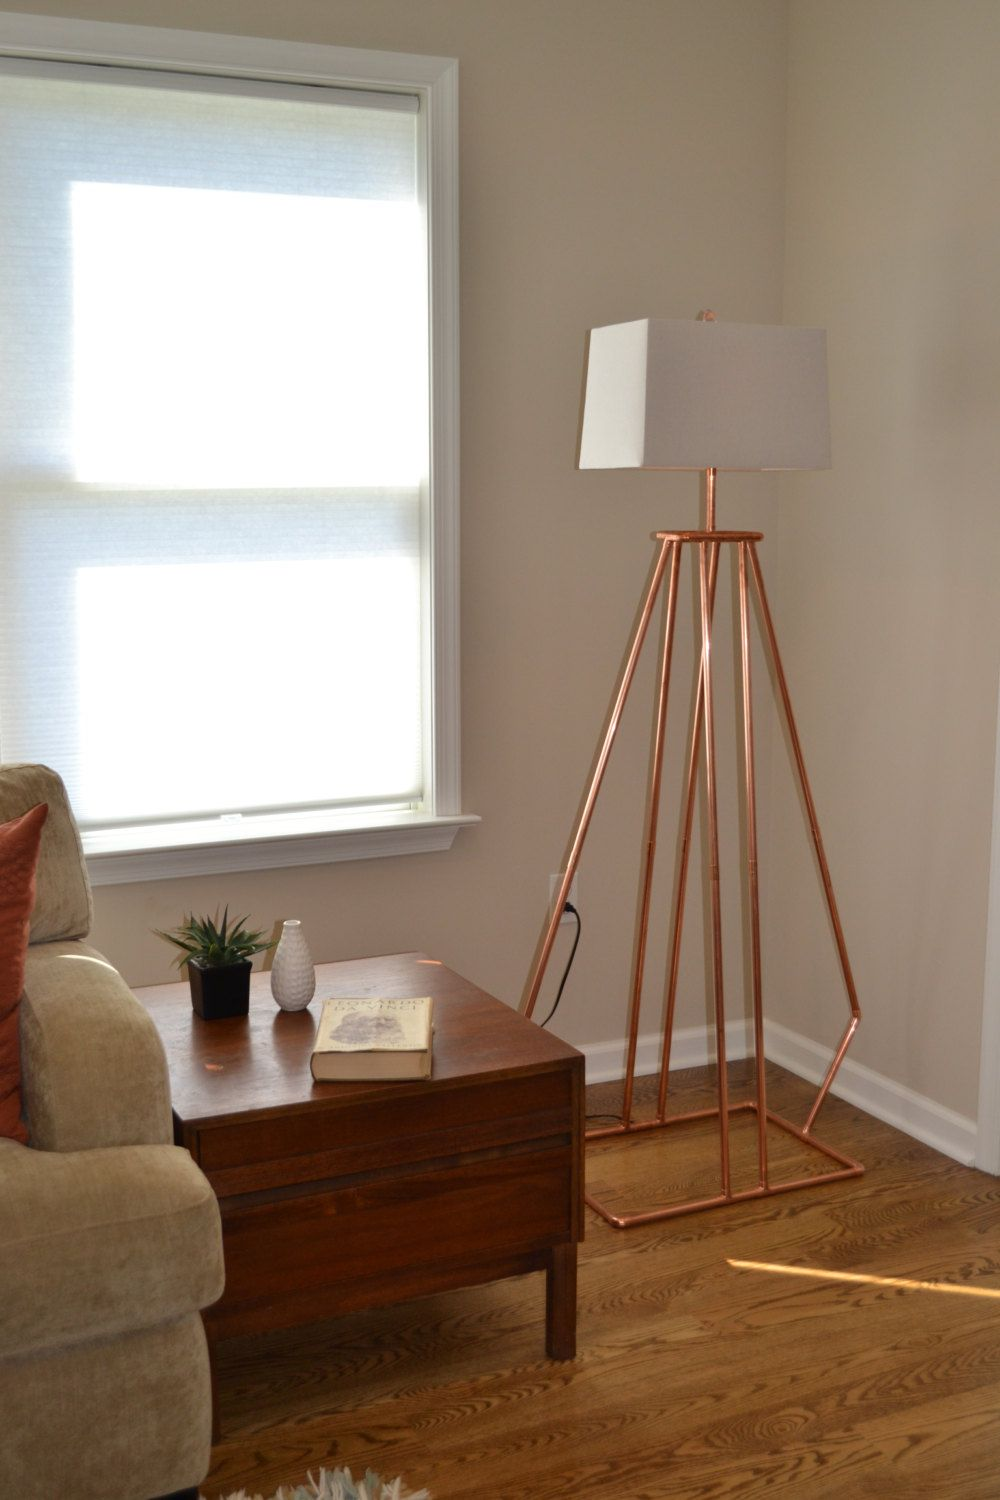 Copper tube pipe handmade wide angle floor lamp by copper tube pipe handmade wide angle floor lamp by atdcoppercreations mozeypictures Images